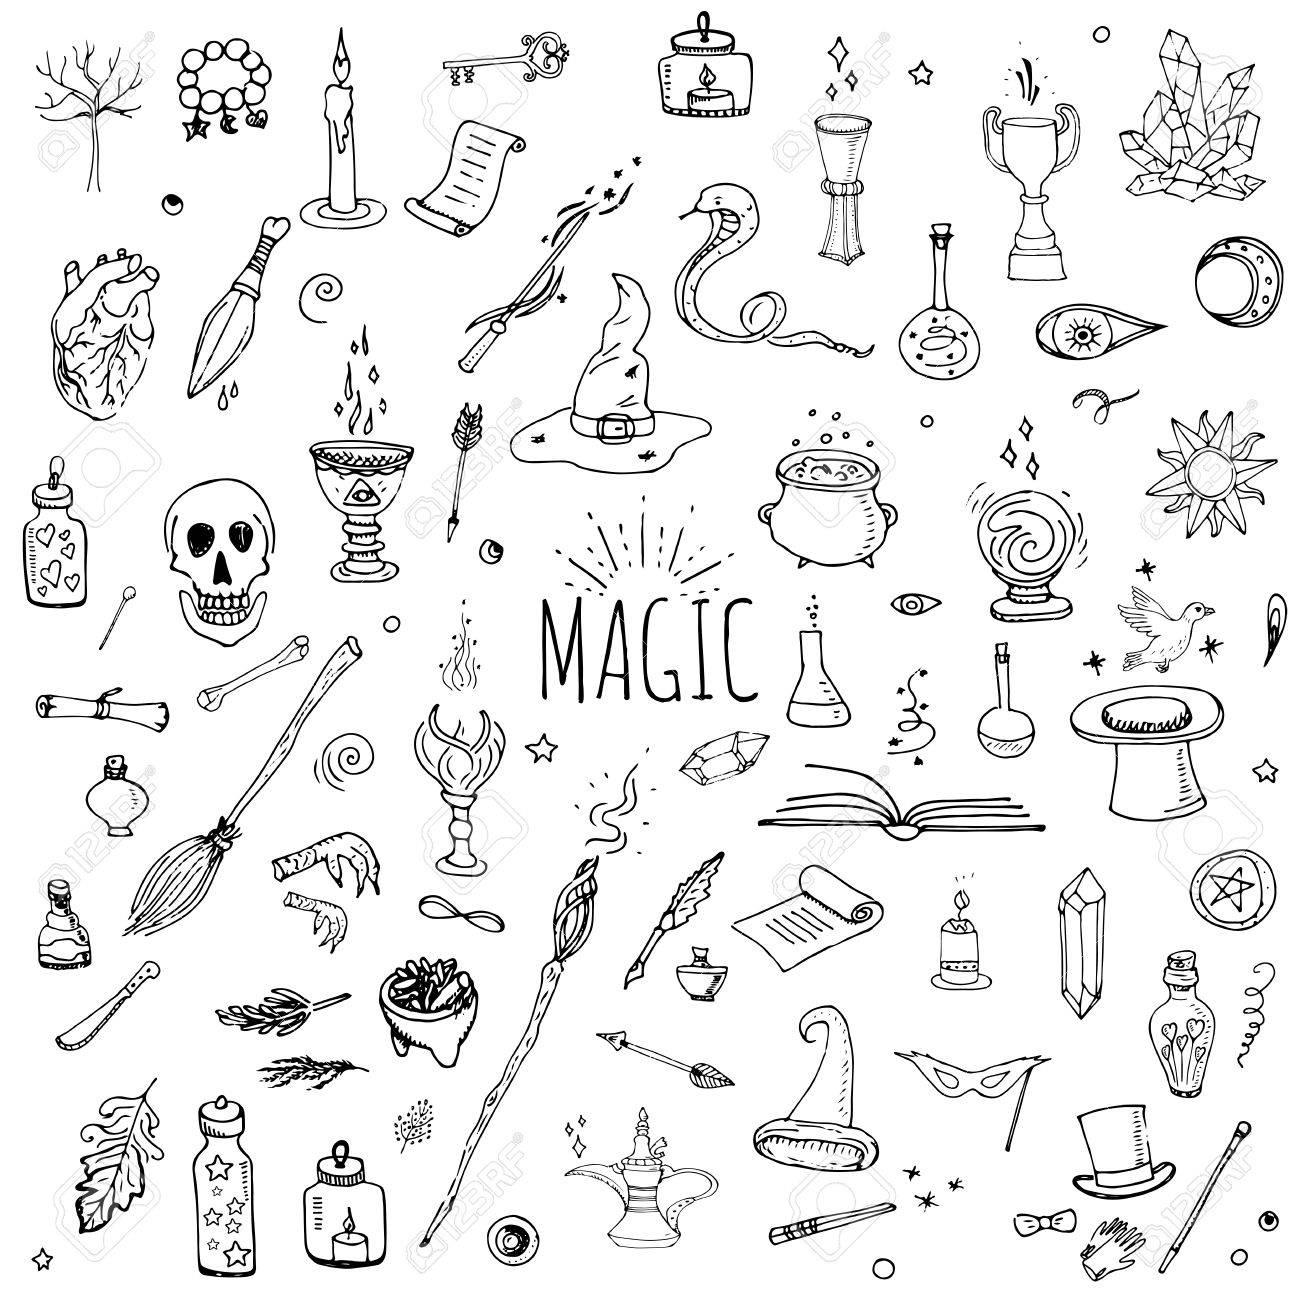 Witch craft symbols gallery symbol and sign ideas hand drawn doodle magic set vector illustration wizardy hand drawn doodle magic set vector illustration wizardy buycottarizona